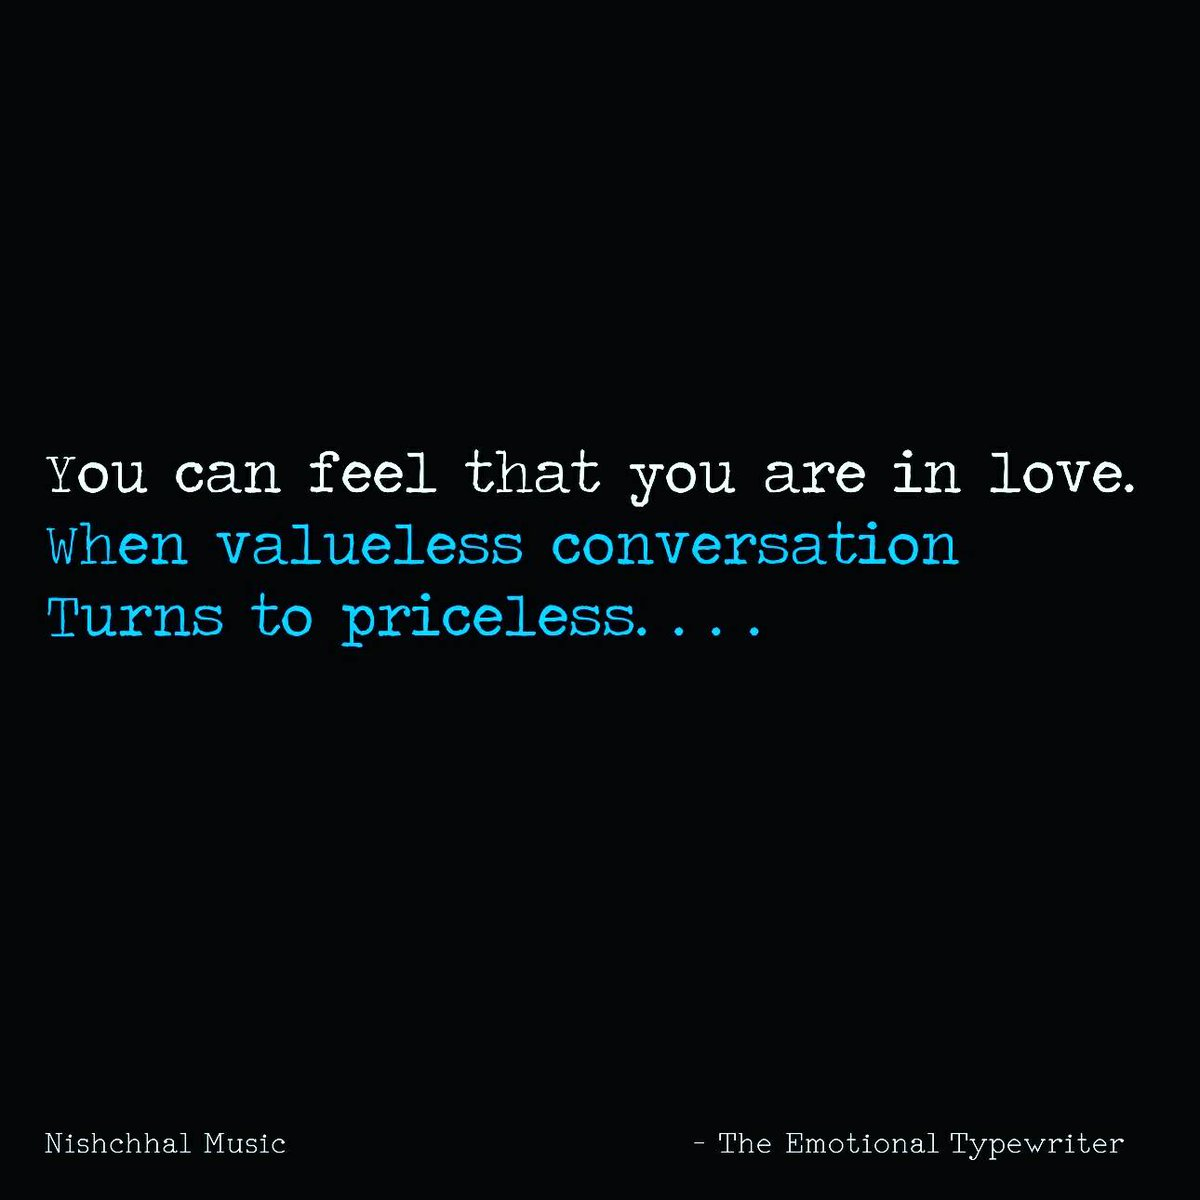 Emotionaltypewriter On Twitter You Are In Love Quotes